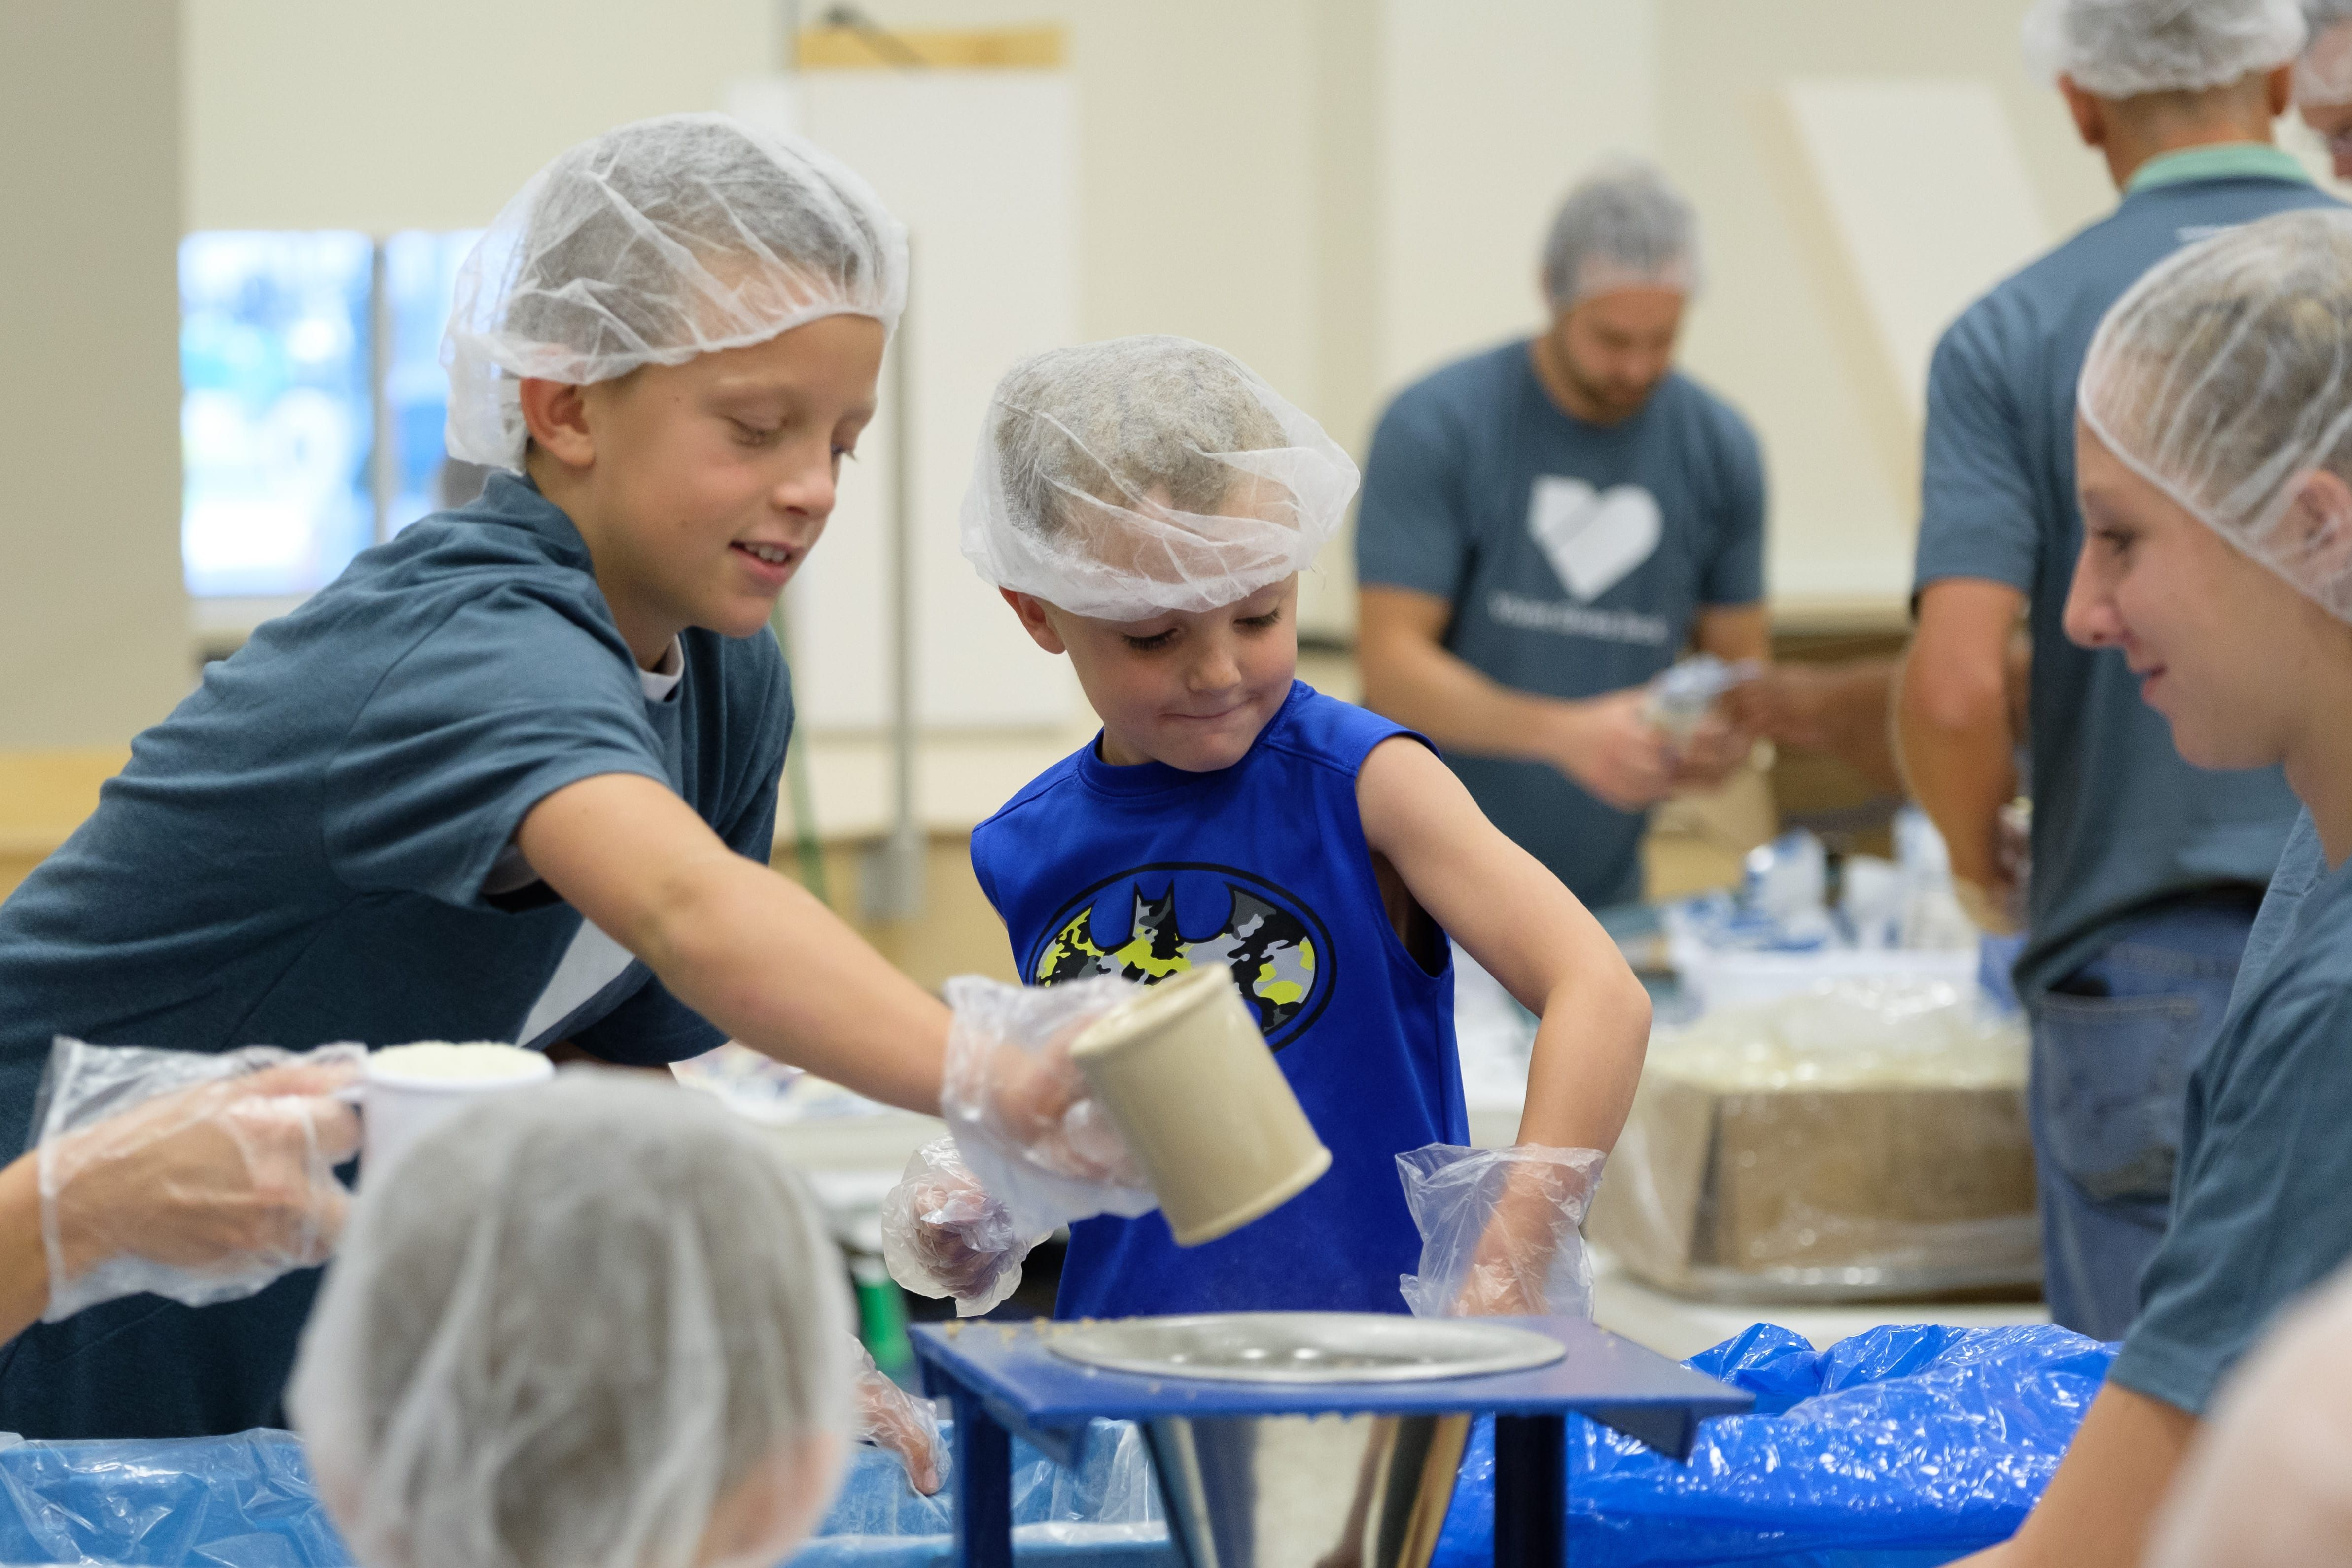 How Children With Disabilities Came To >> Vivint S Annual Feed My Starving Children Event Employees And Their